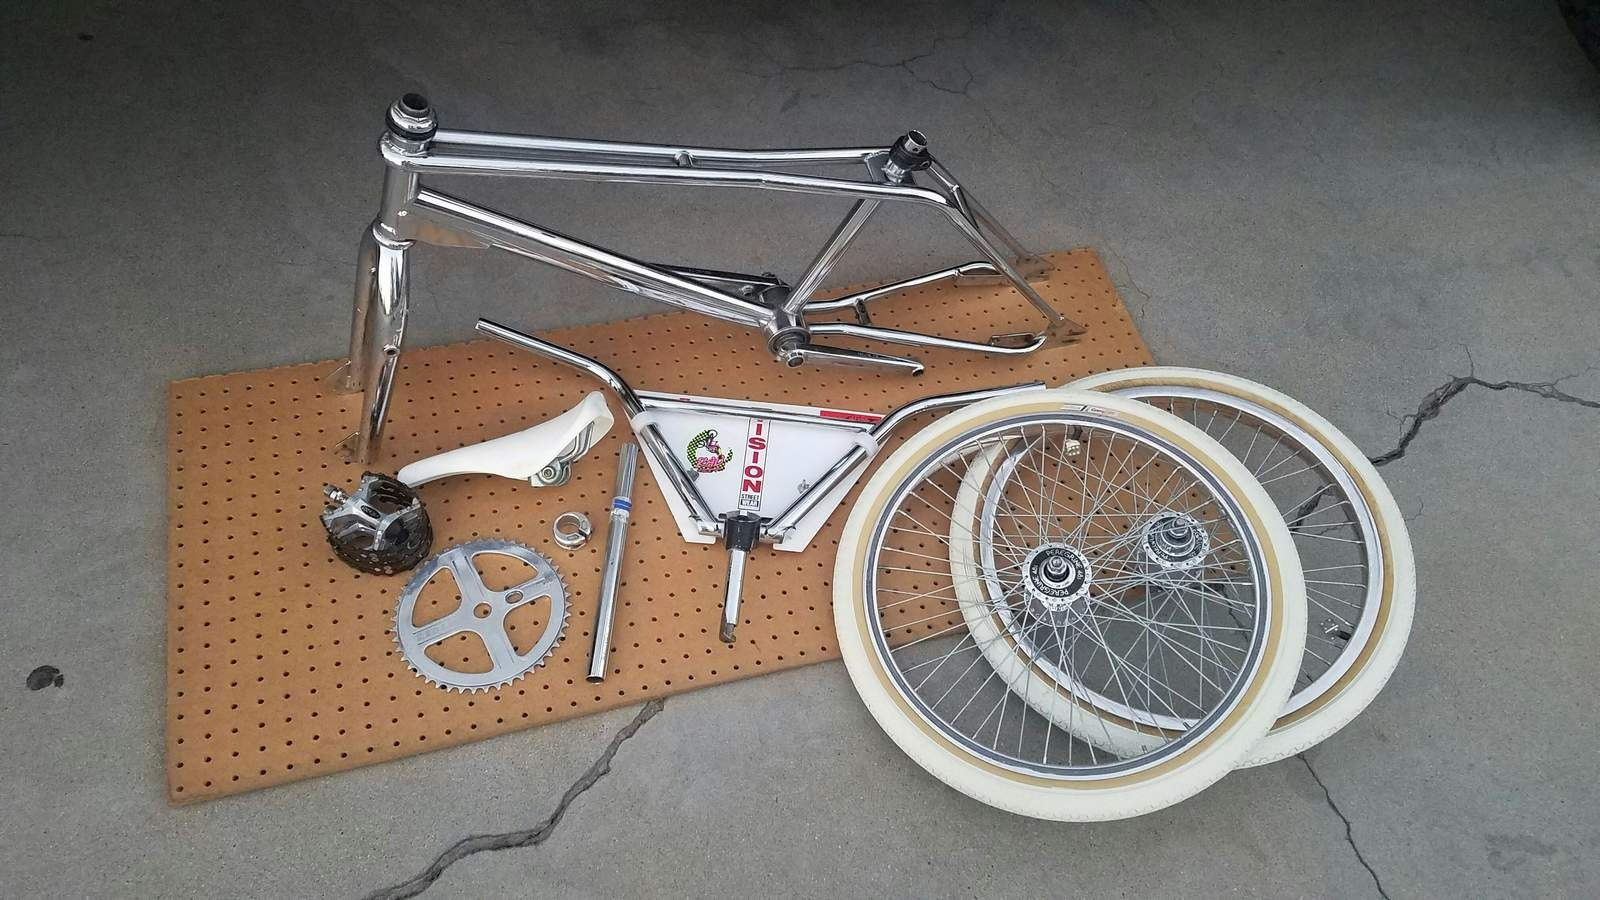 https://s3.amazonaws.com/uploads.bmxmuseum.com/user-images/99538/1172160404e5496.jpeg